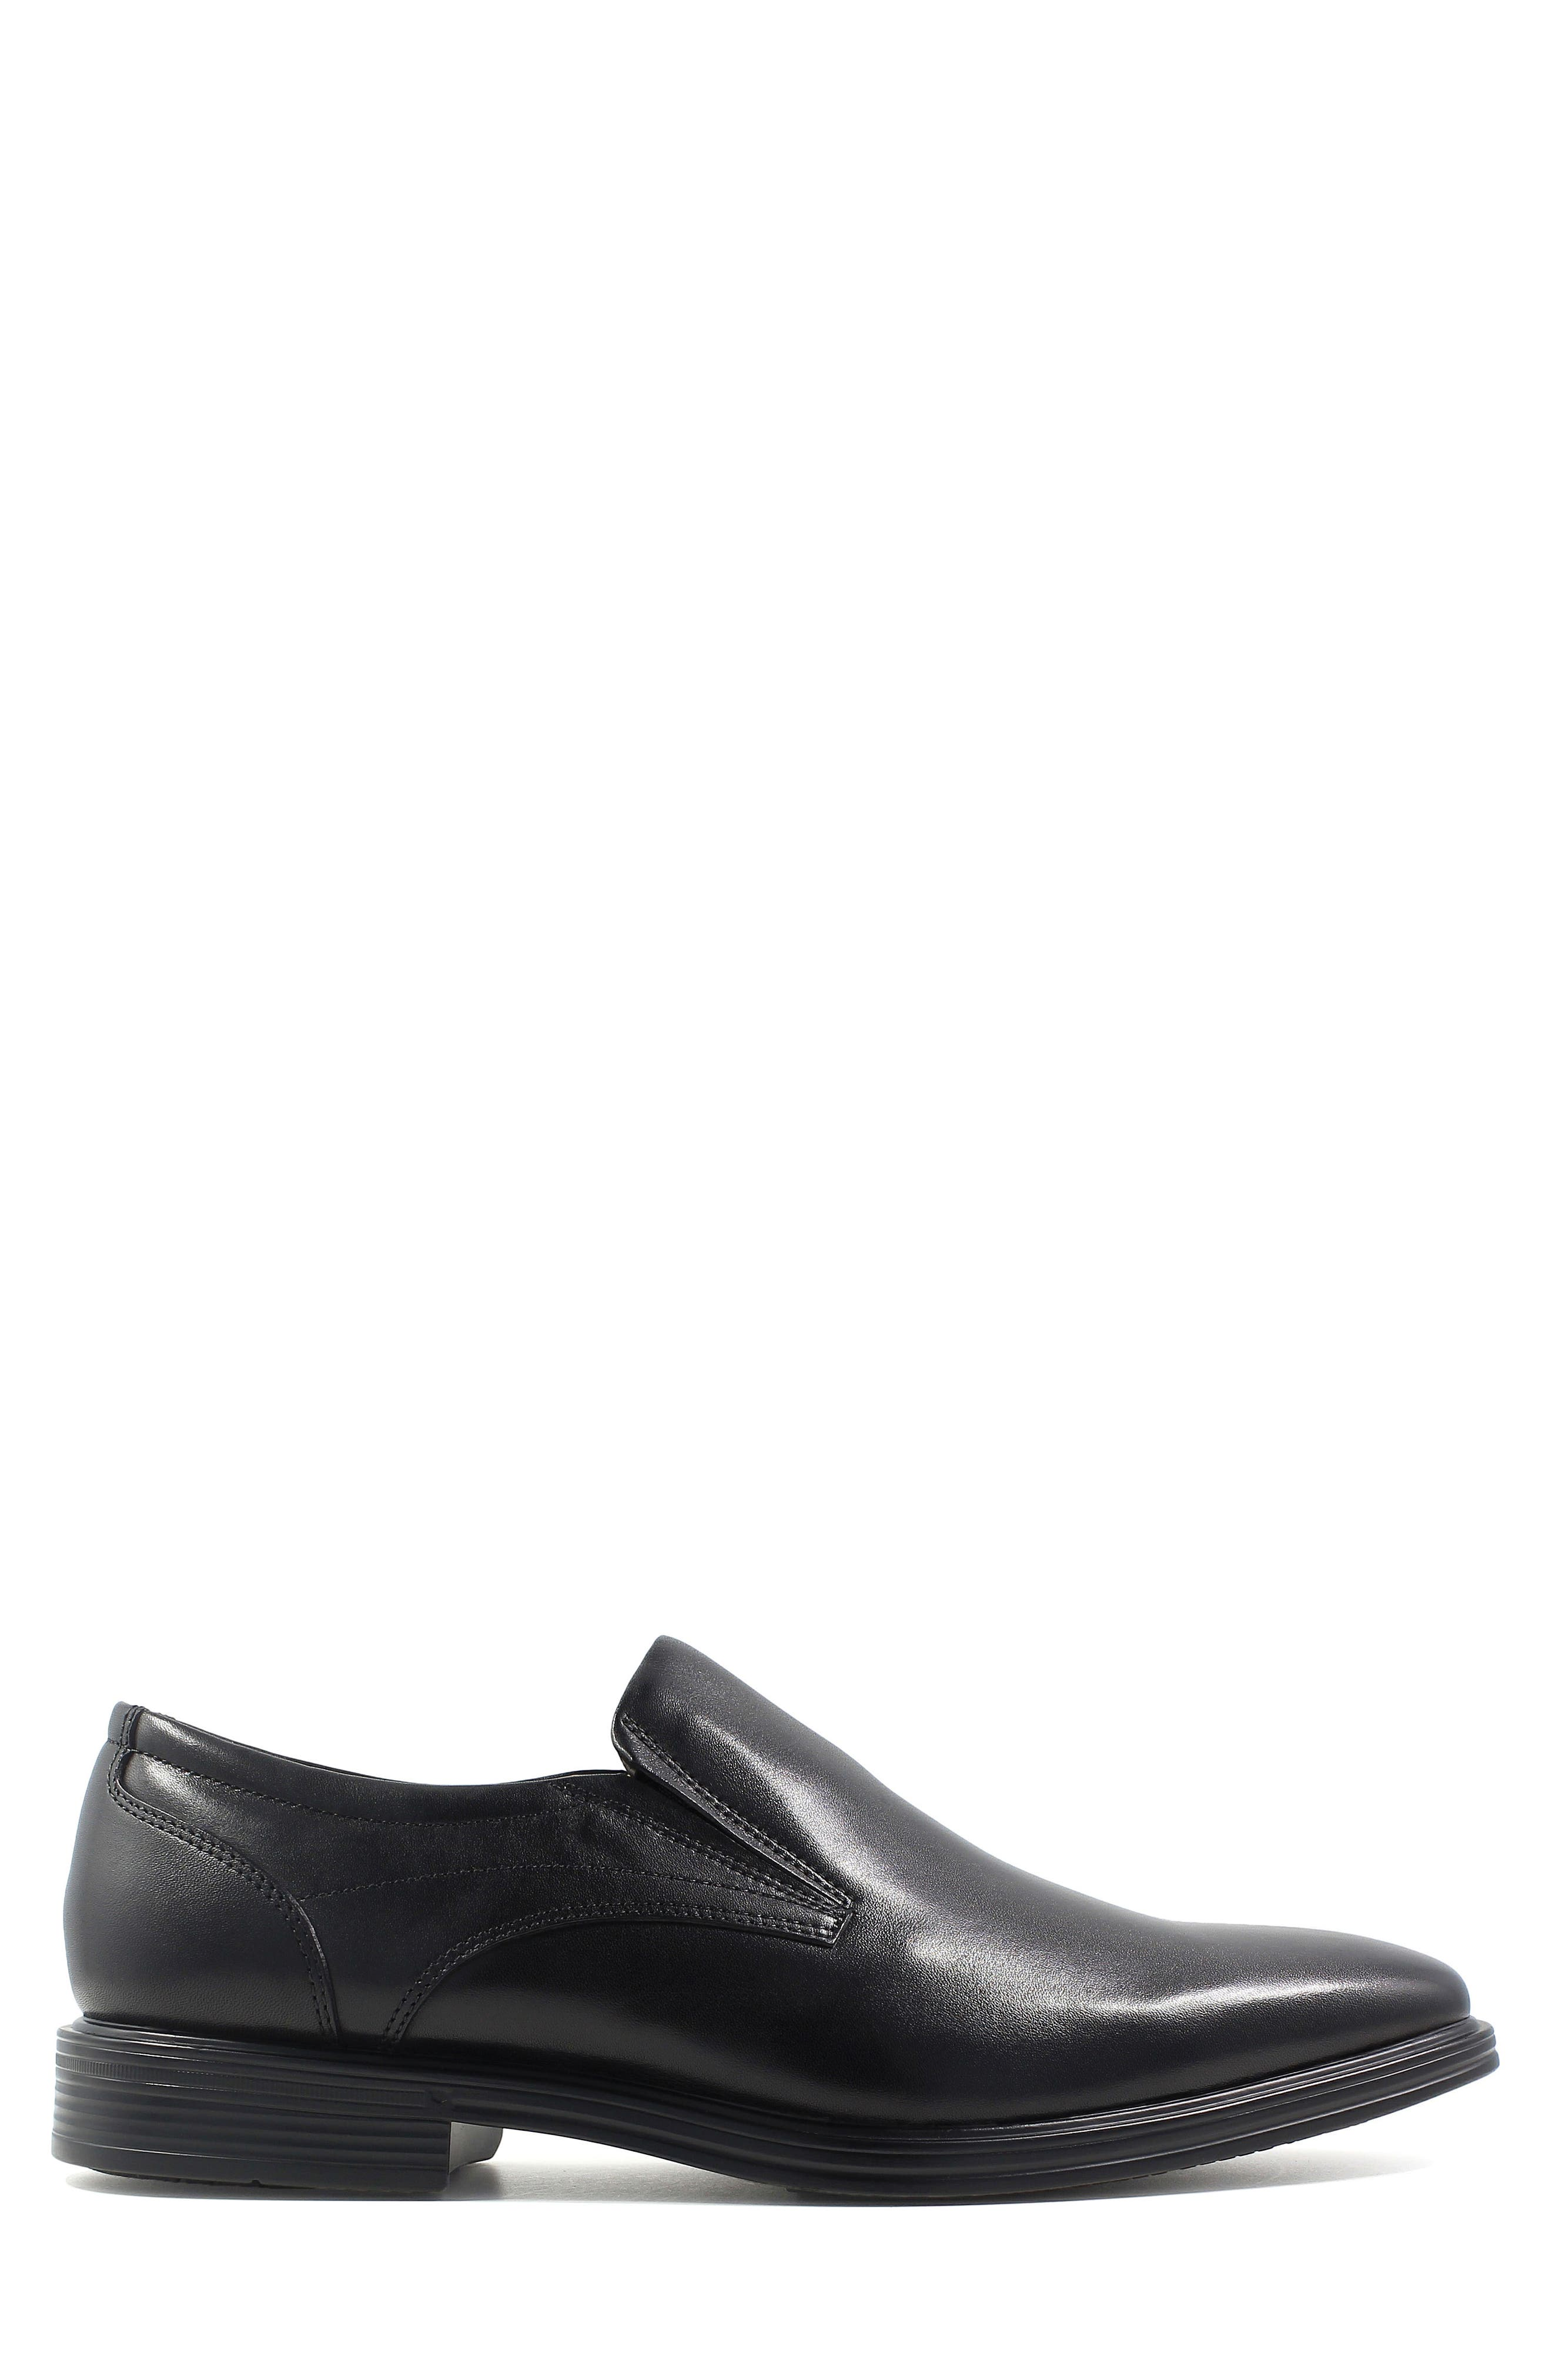 Heights Venetian Loafer,                             Alternate thumbnail 3, color,                             Black